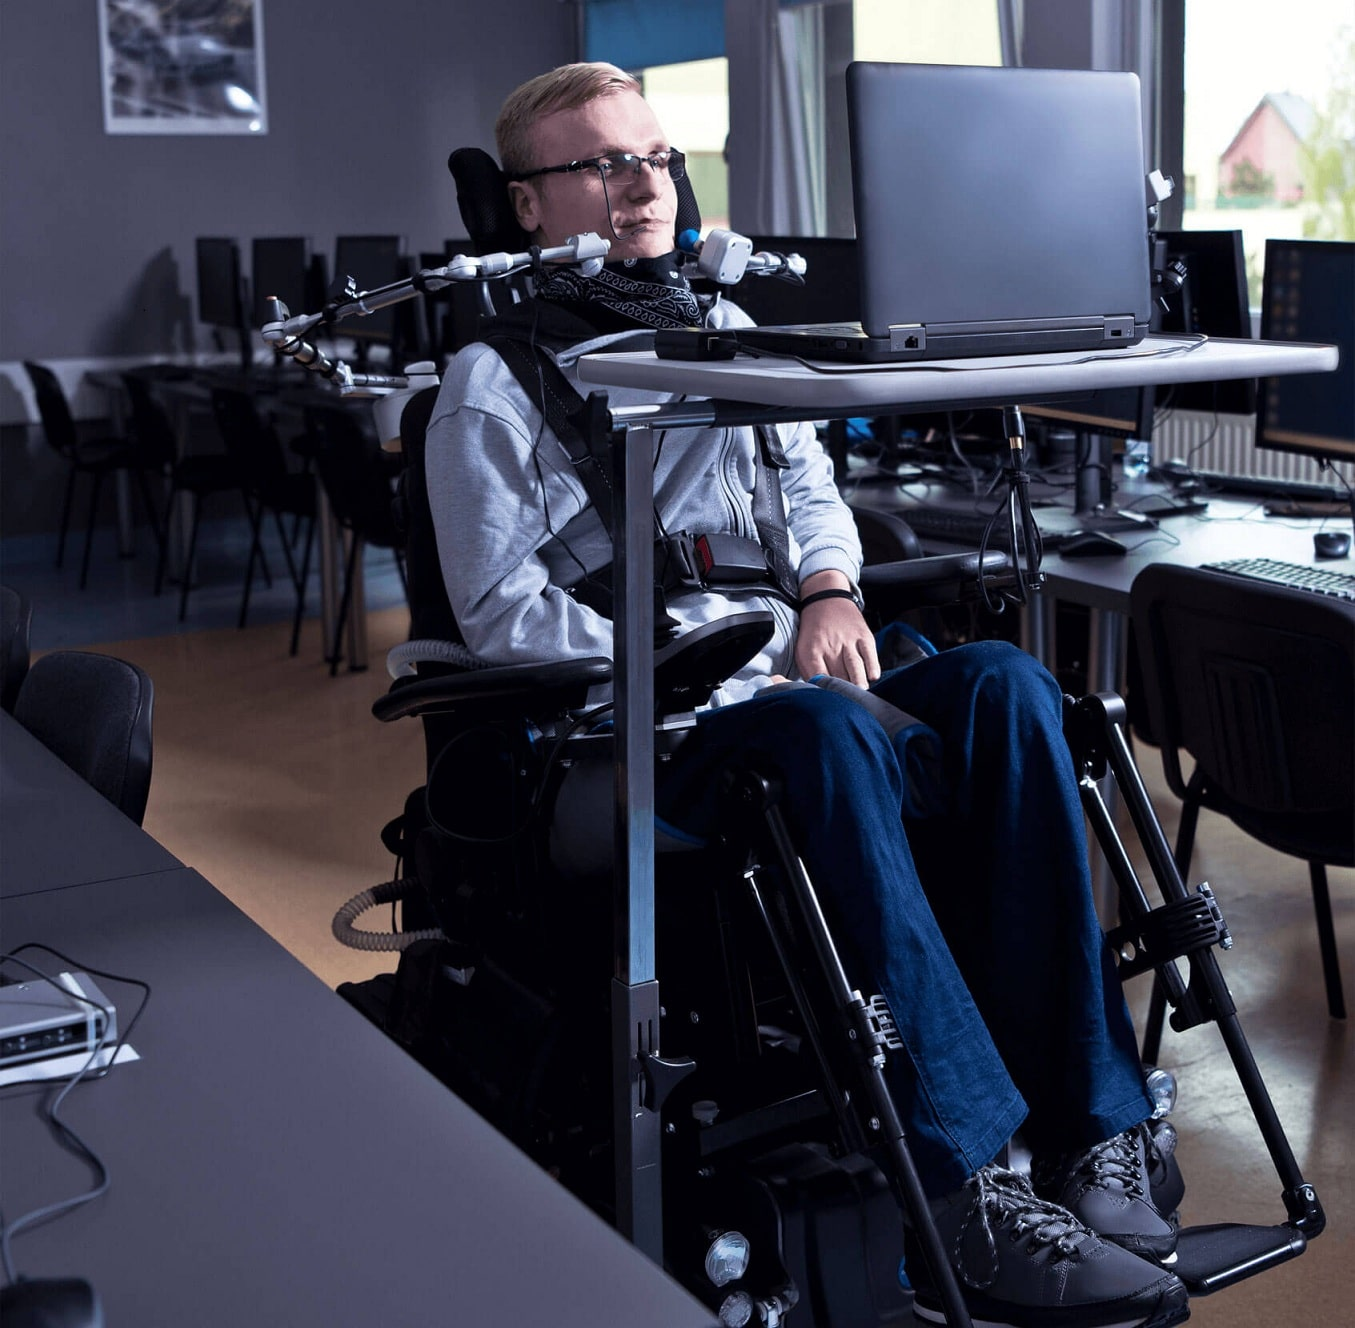 Photo of Disabled Person Using Voice Controls to Manage a Computer